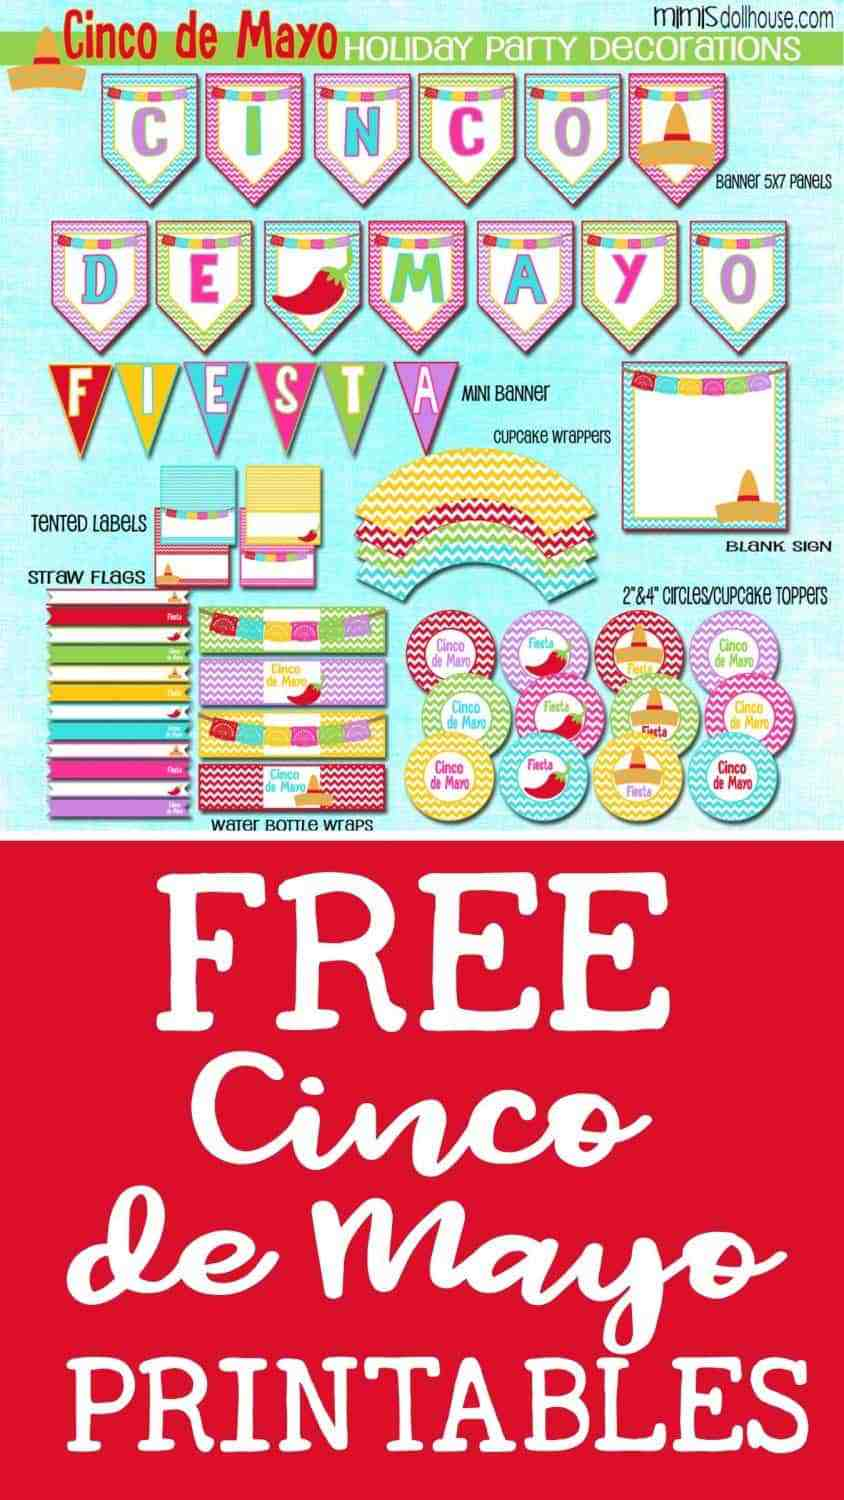 Cinco de Mayo: FREE Cinco de Mayo Printables.  Throwing a party for Cinco de Mayo?  How about some FREE Cinco de Mayo Printables to get you started. Be sure to checkout all our Cinco de Mayo Ideas and Holiday Inspiration.